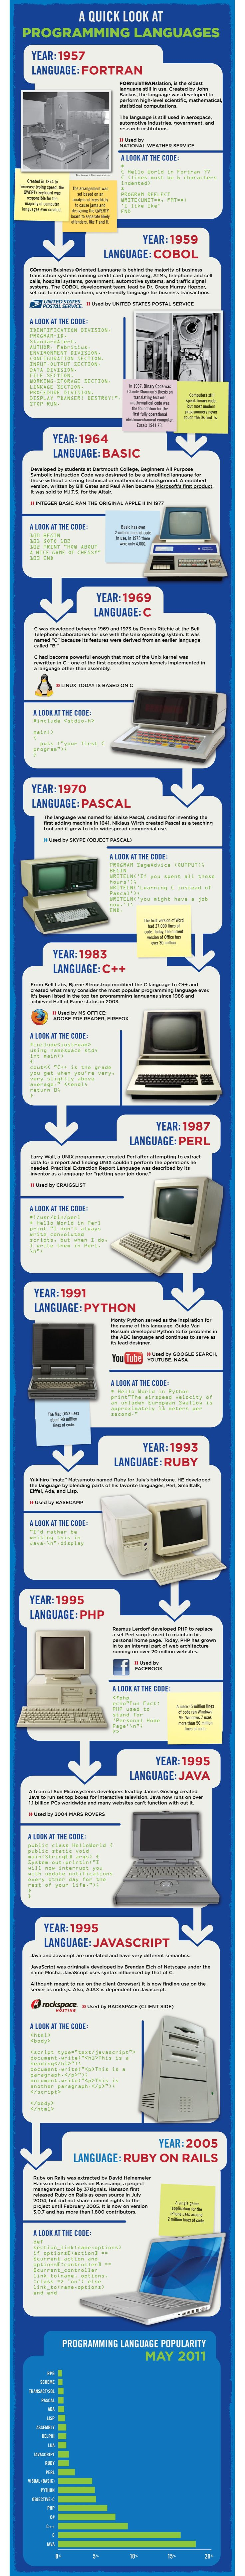 A Quick History of Programming Languages Infographic